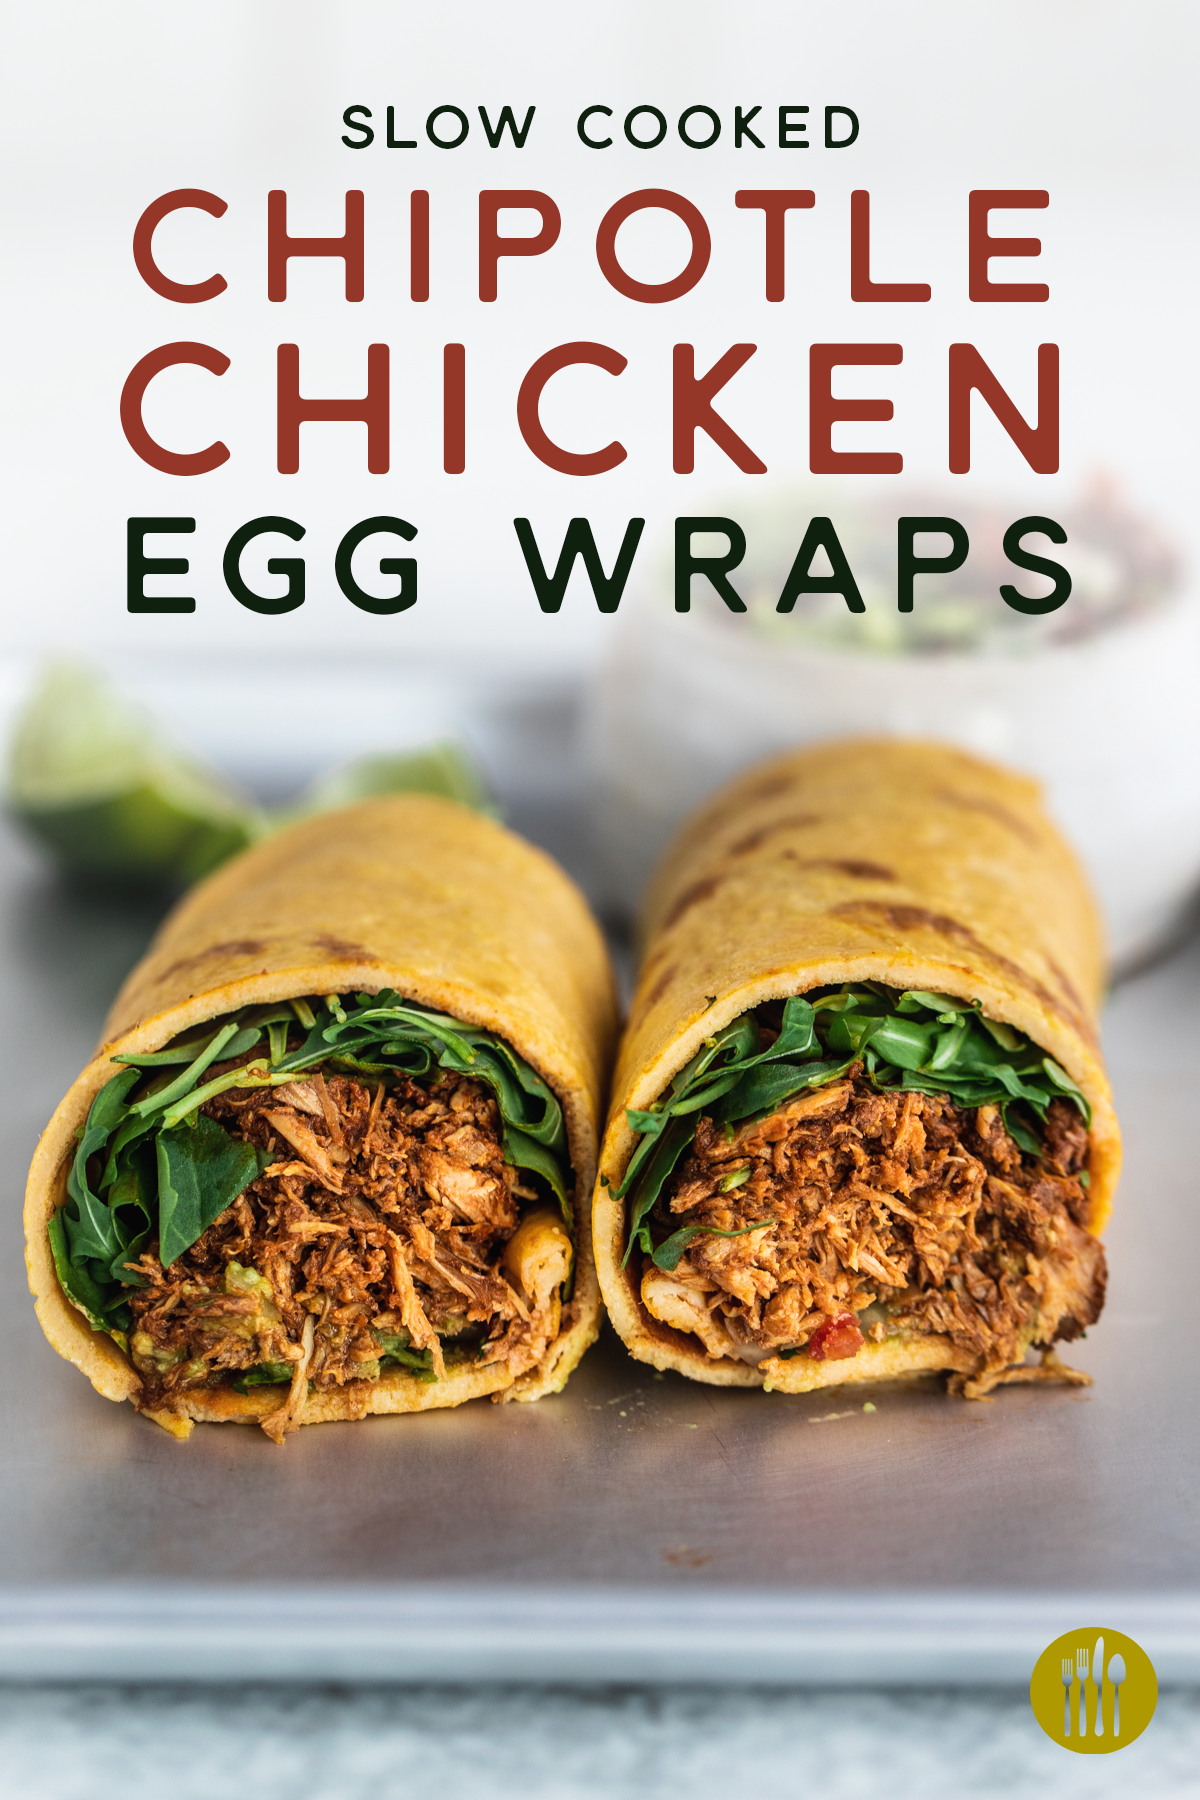 Slow cooked chipotle chicken egg wraps cut in half on a silver tray